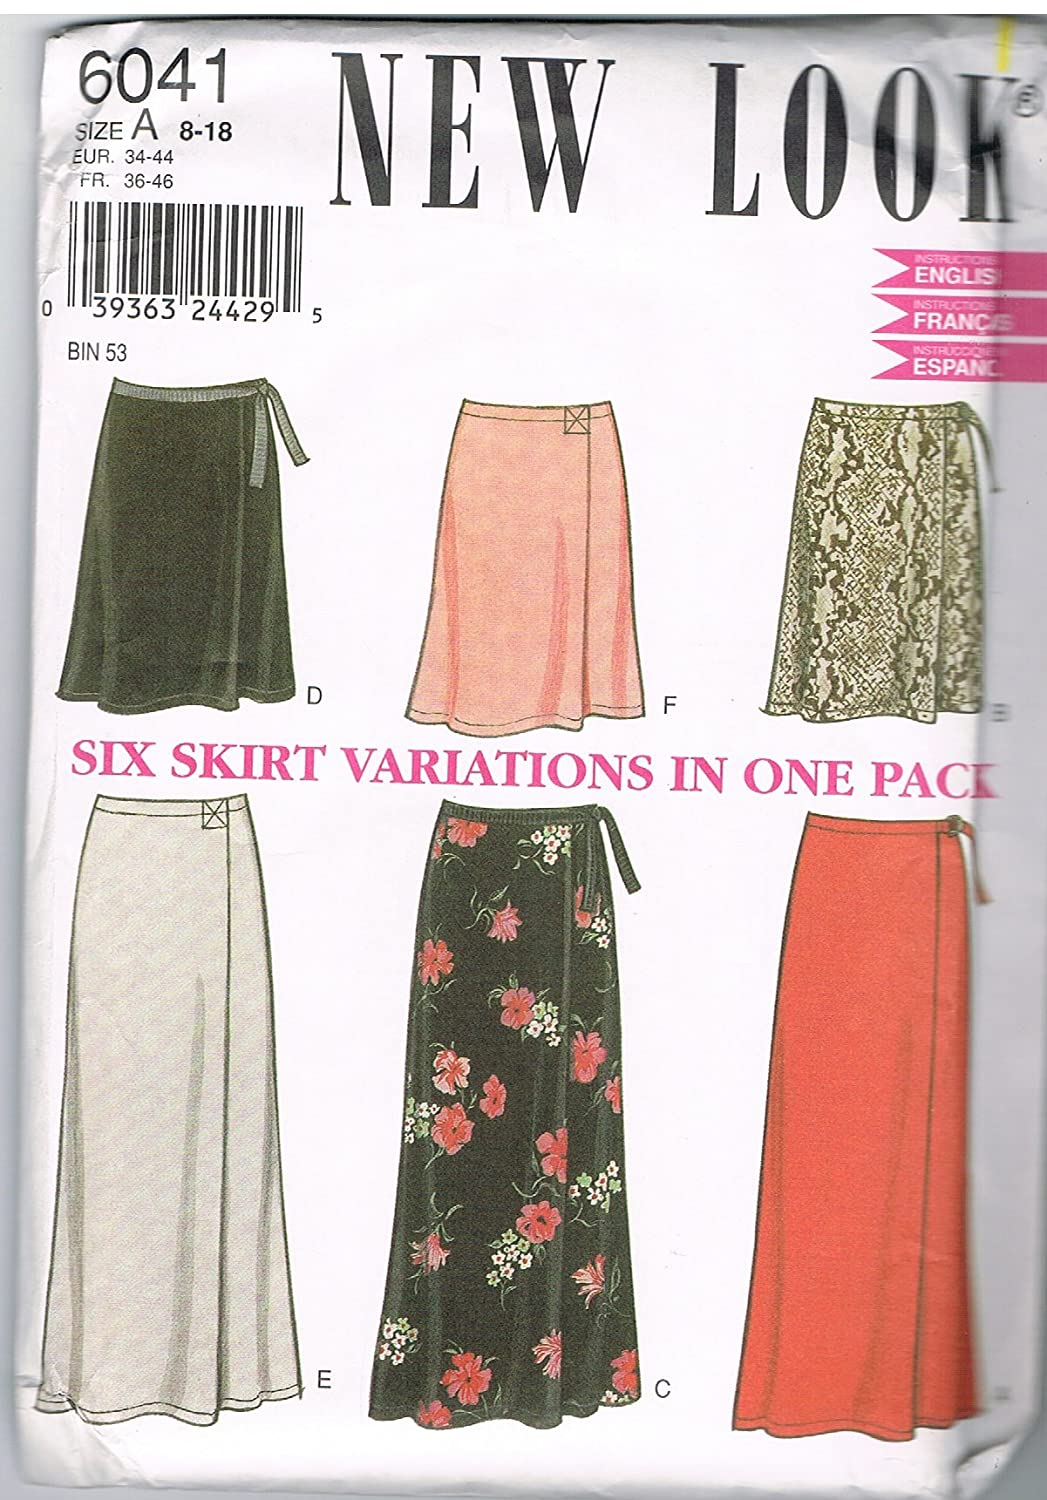 New Look Skirt Pattern by New Look   B00DL7H7QO